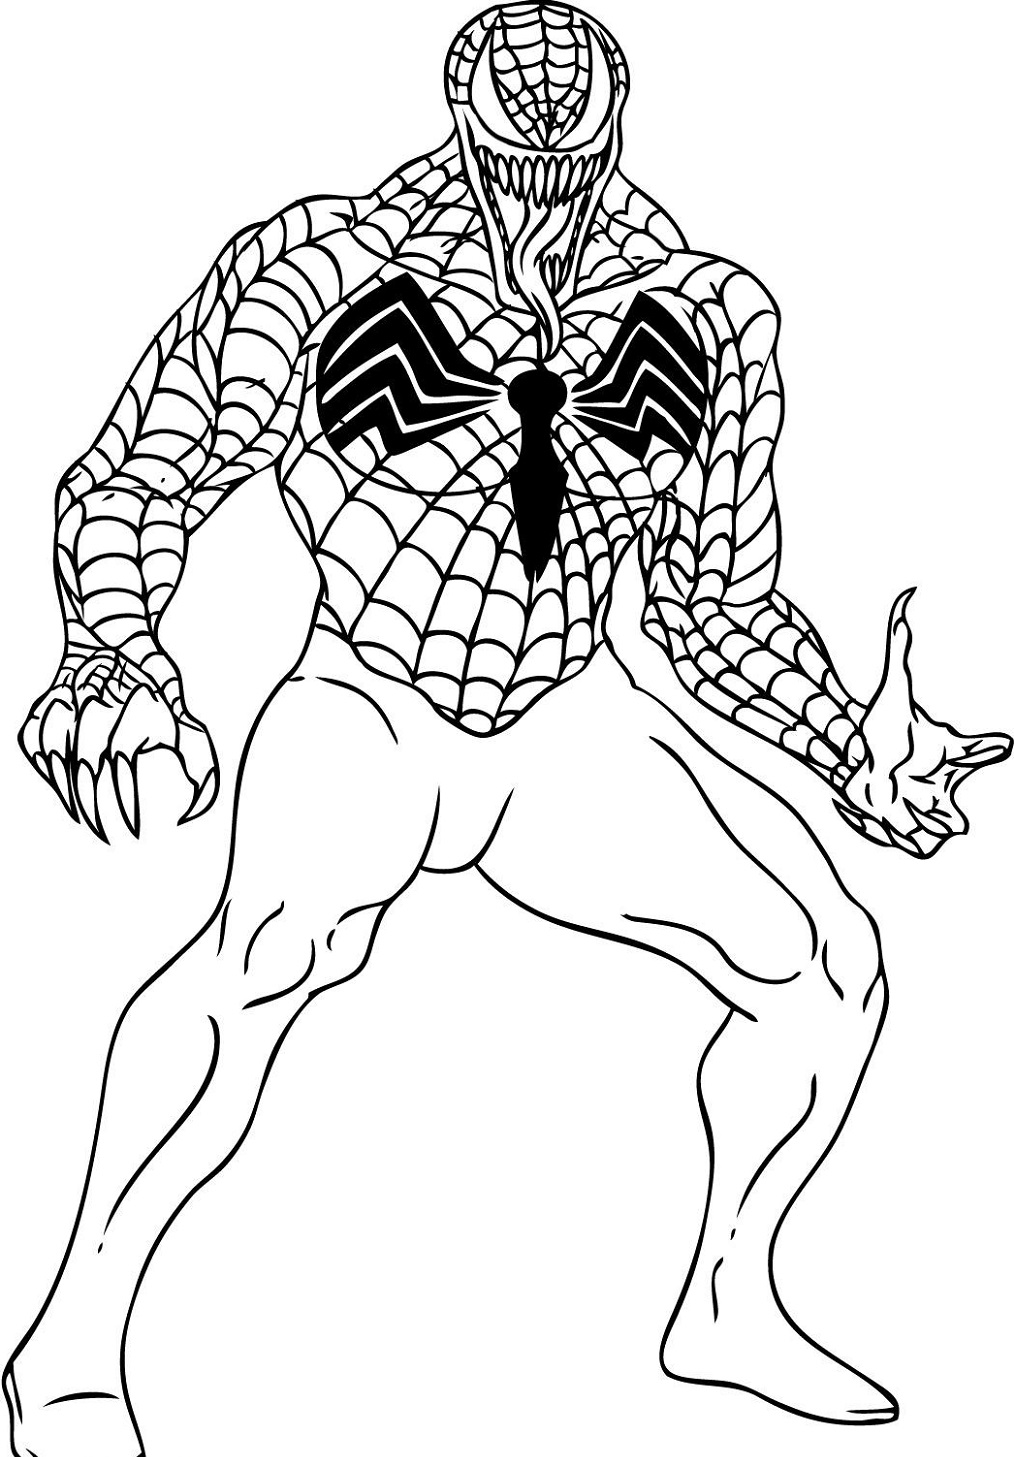 spider man coloring spiderman coloring pages for boys educative printable spider man coloring 1 1